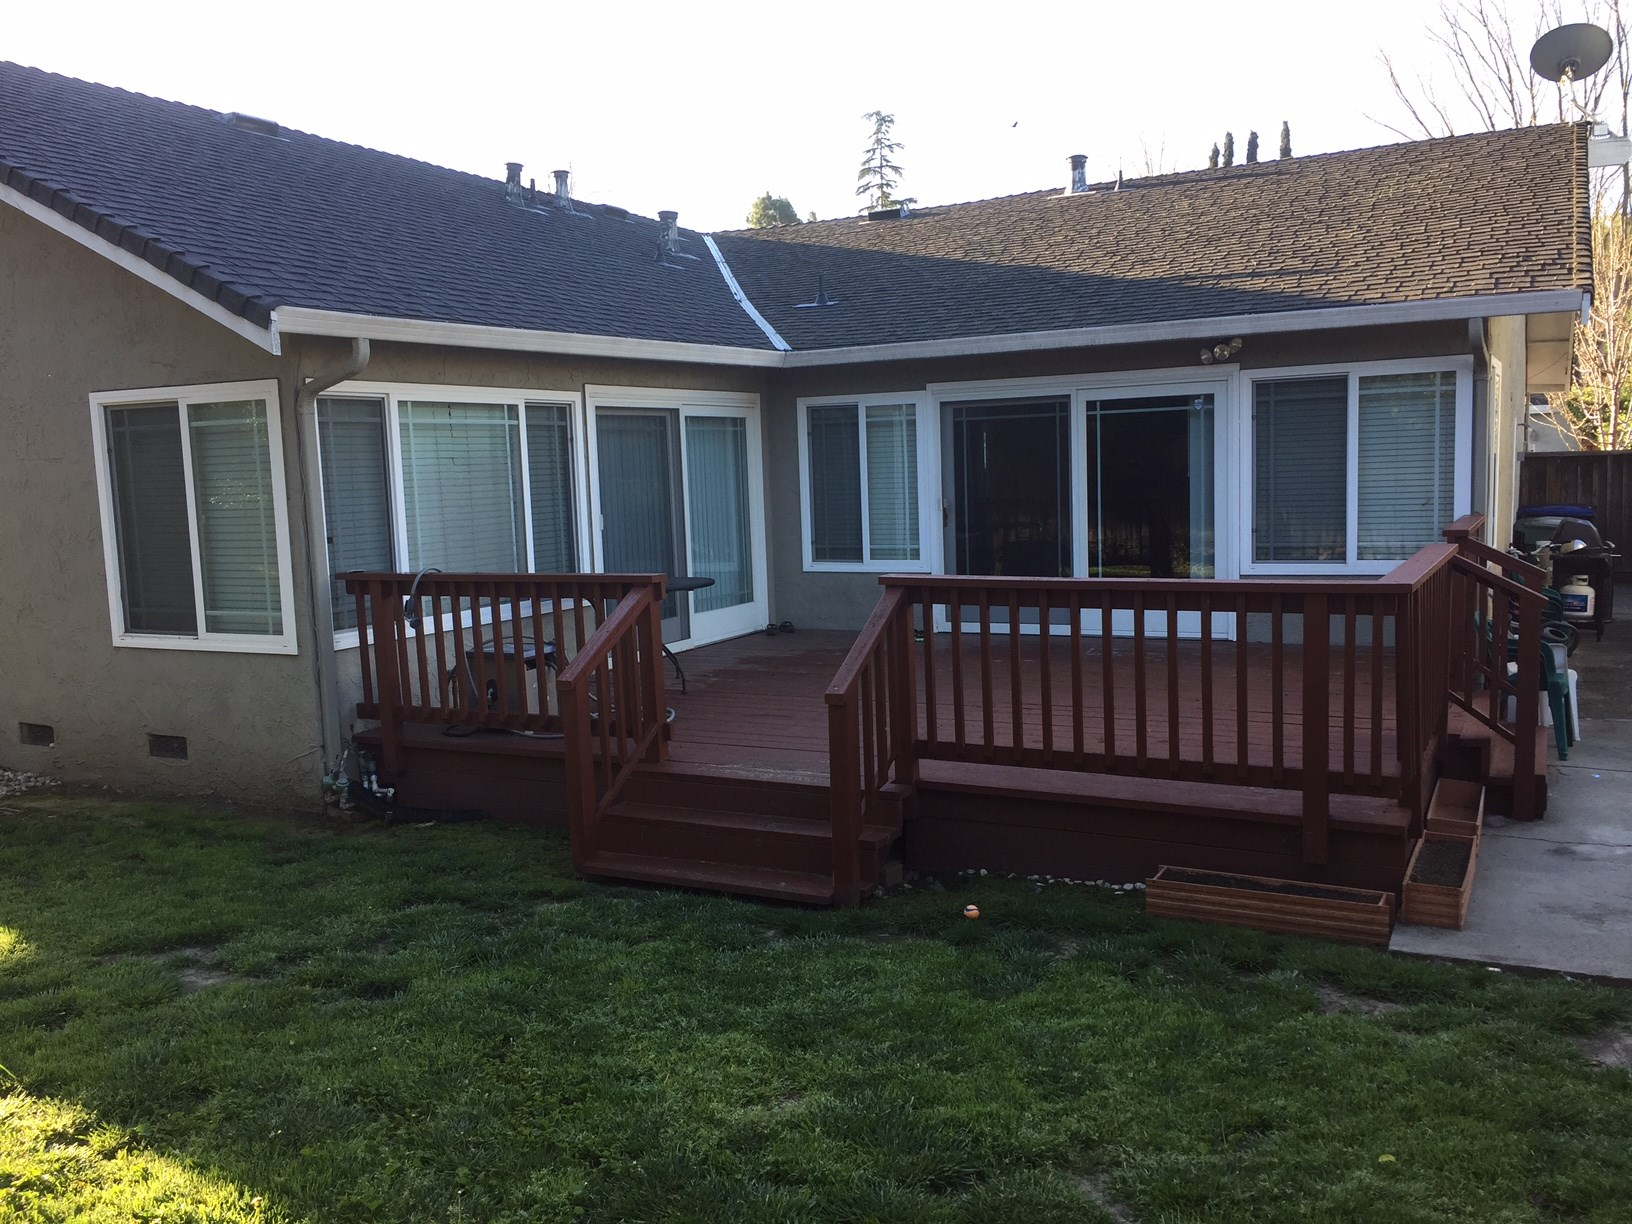 rentals apartments and flats for rent commercial space individual large 4 bedroom 2k sq ft house in pleasanton for rent